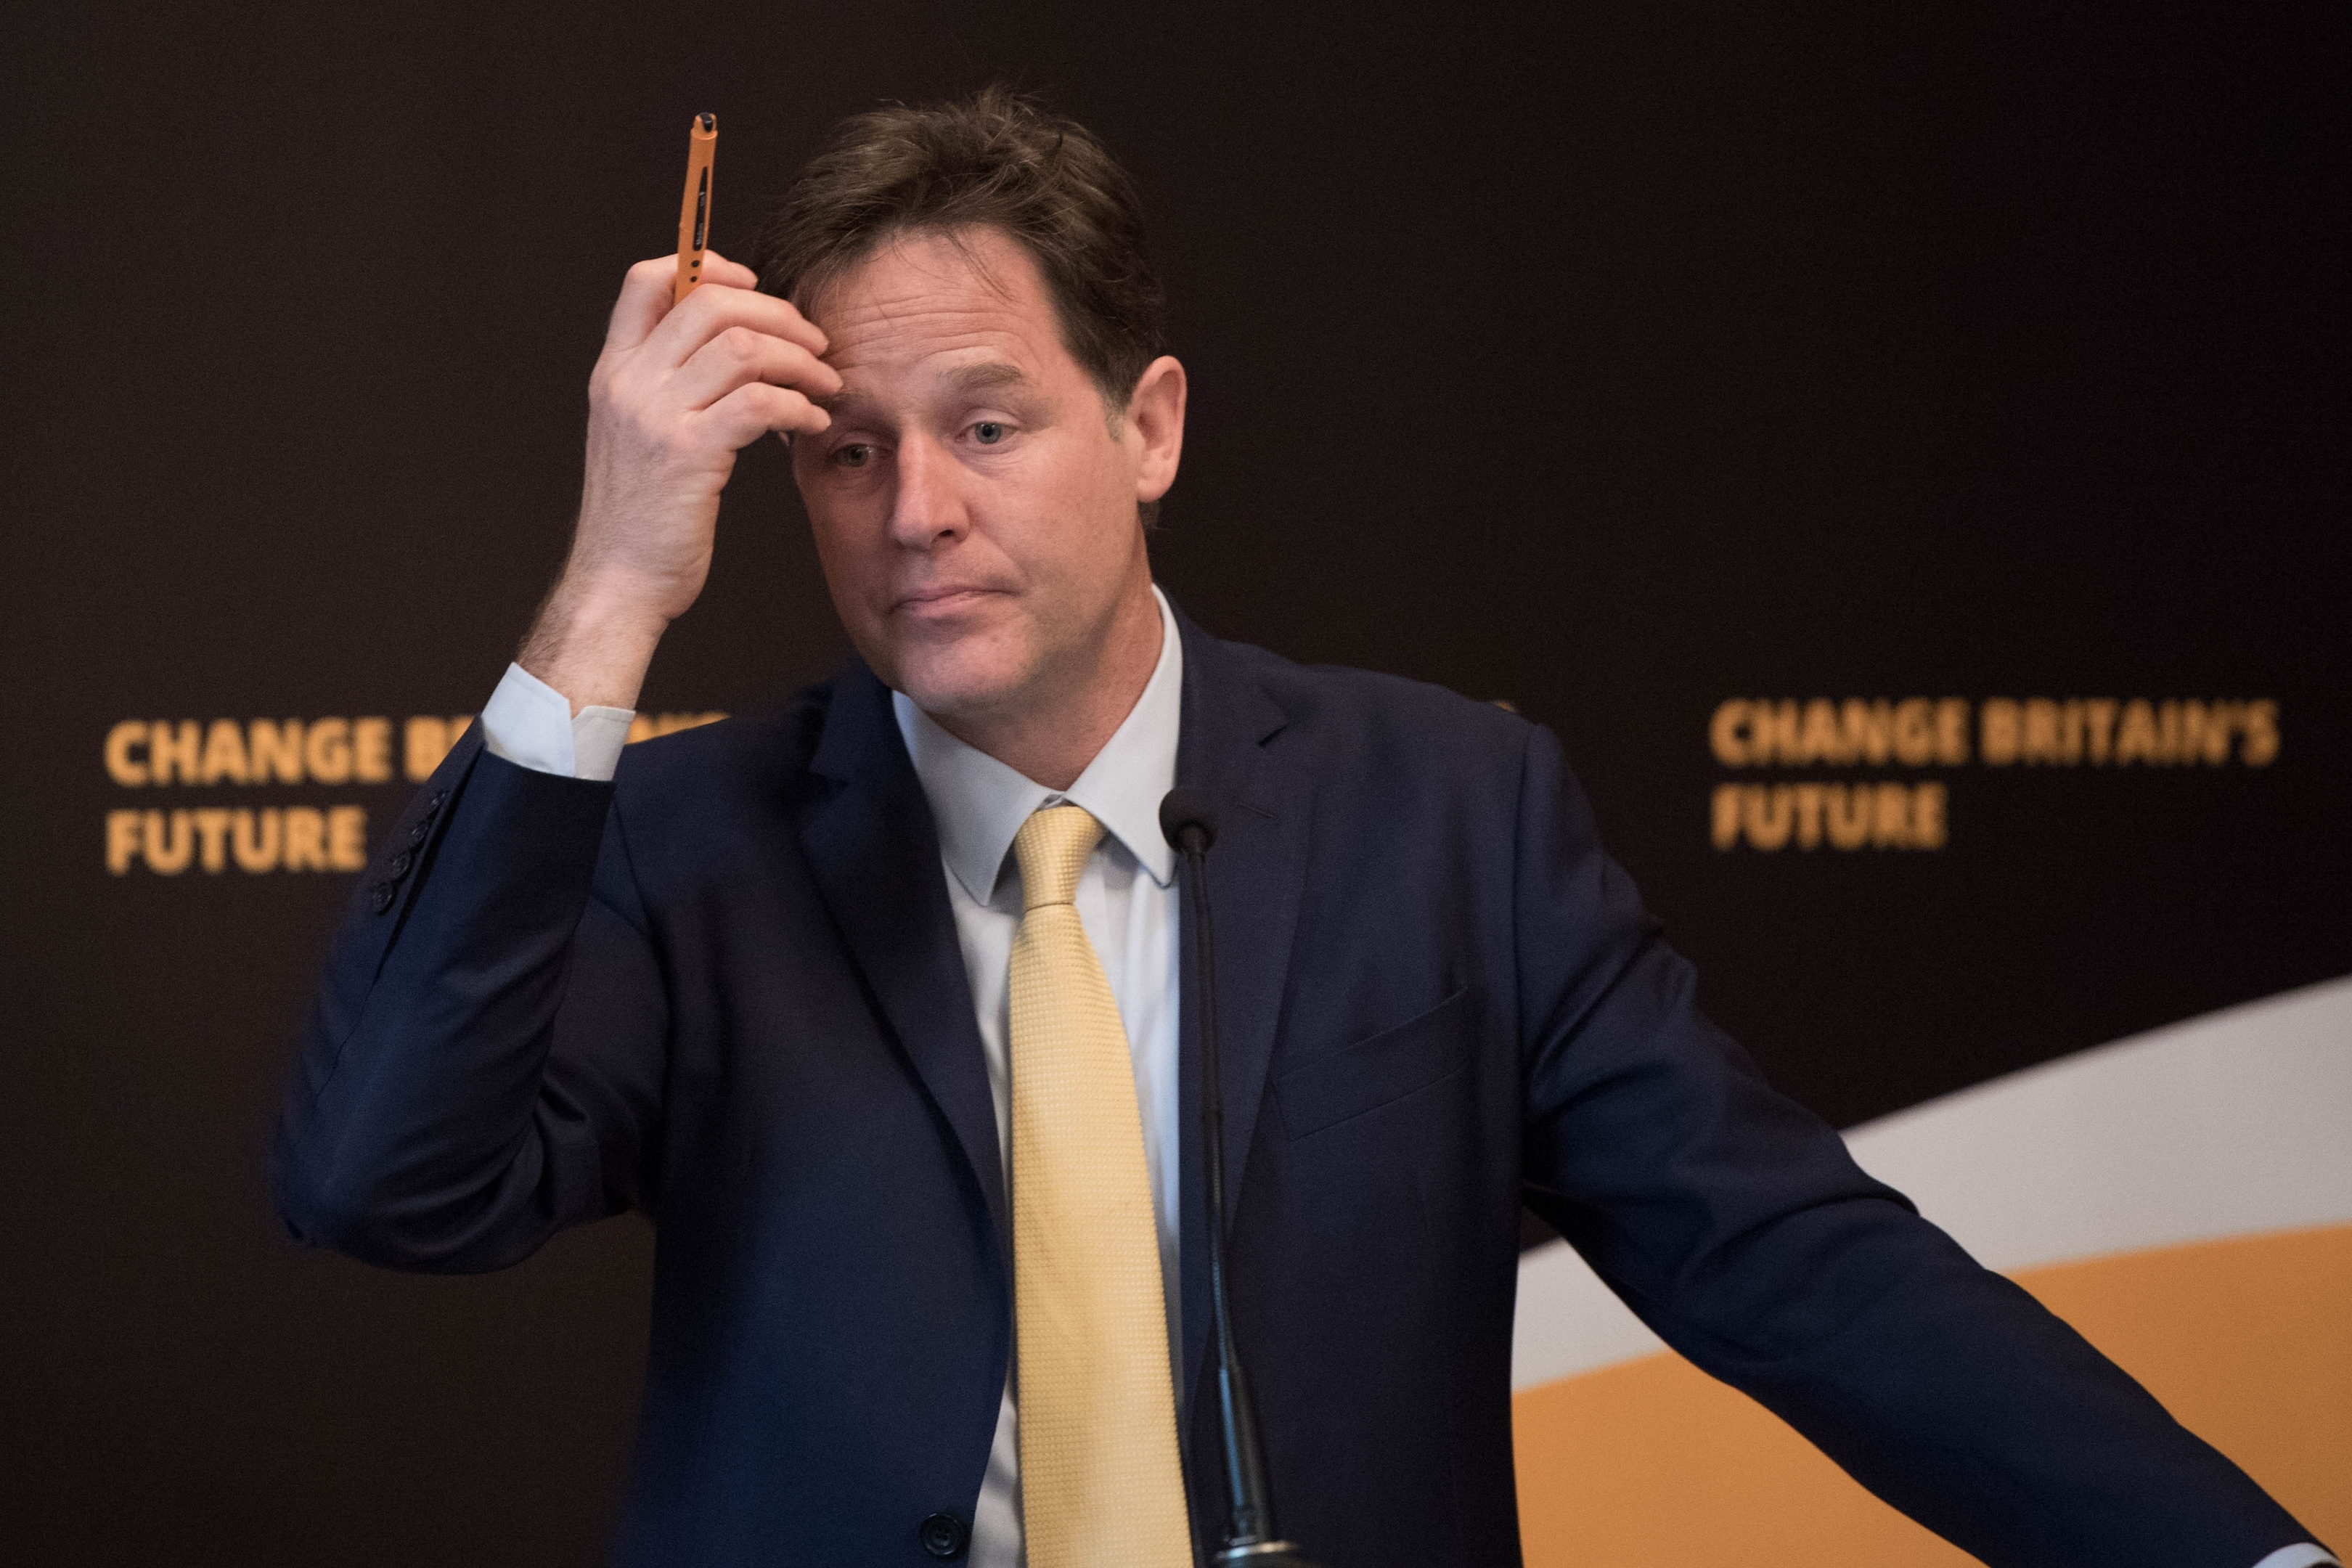 Nick Clegg, who has lost his Sheffield Hallam seat to Labour.